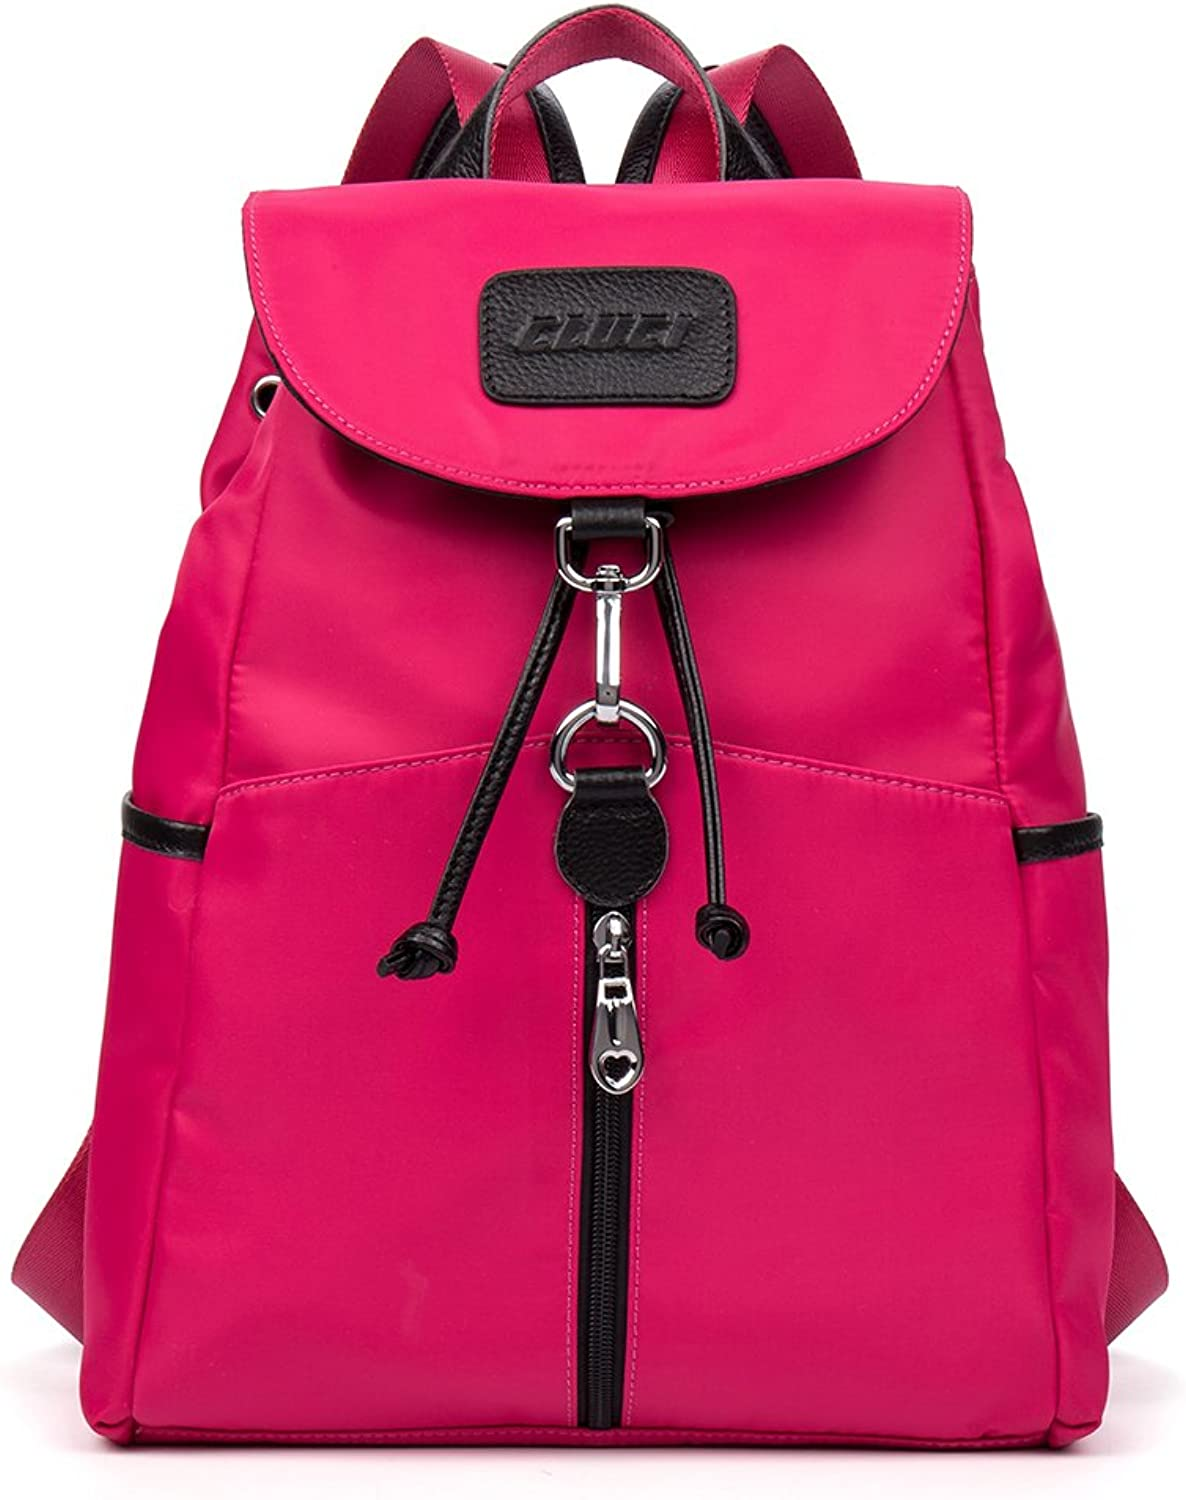 CLUCI Geniune Leather Backpack Purse Fashion Designer School Bags for Women